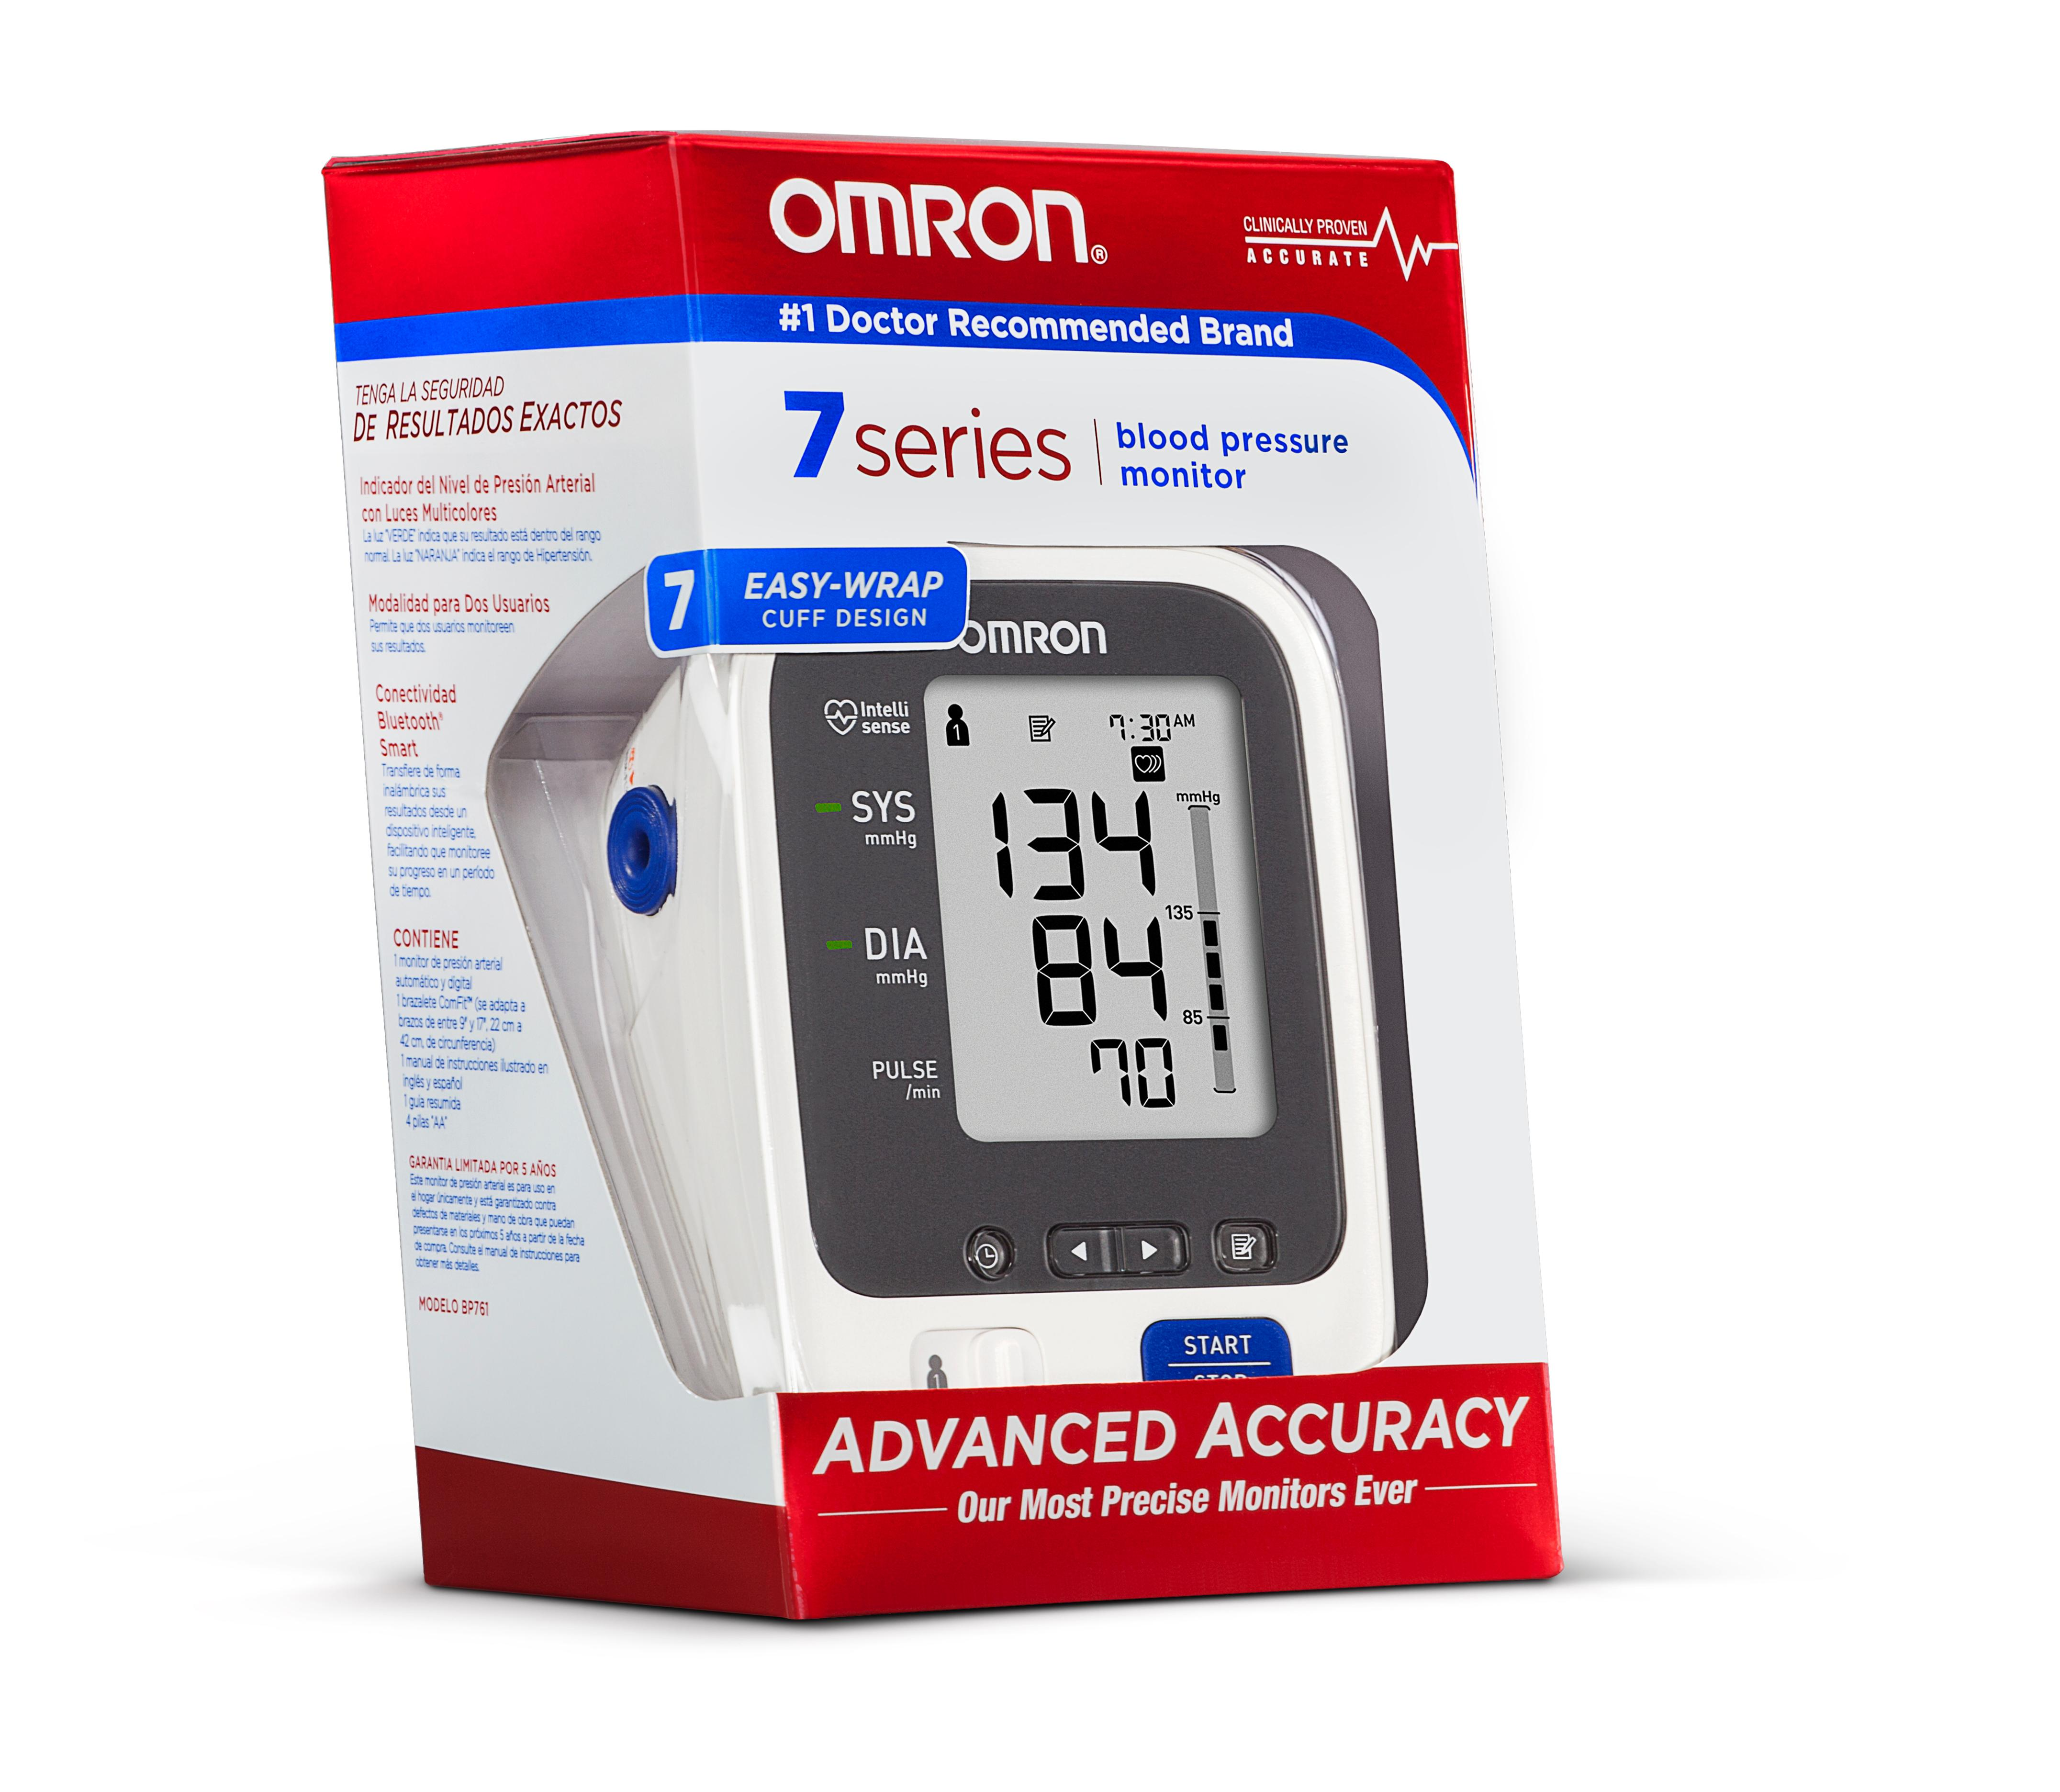 Omron Blood Pressure Monitors Advanced Accuracy Overview Manual Guide